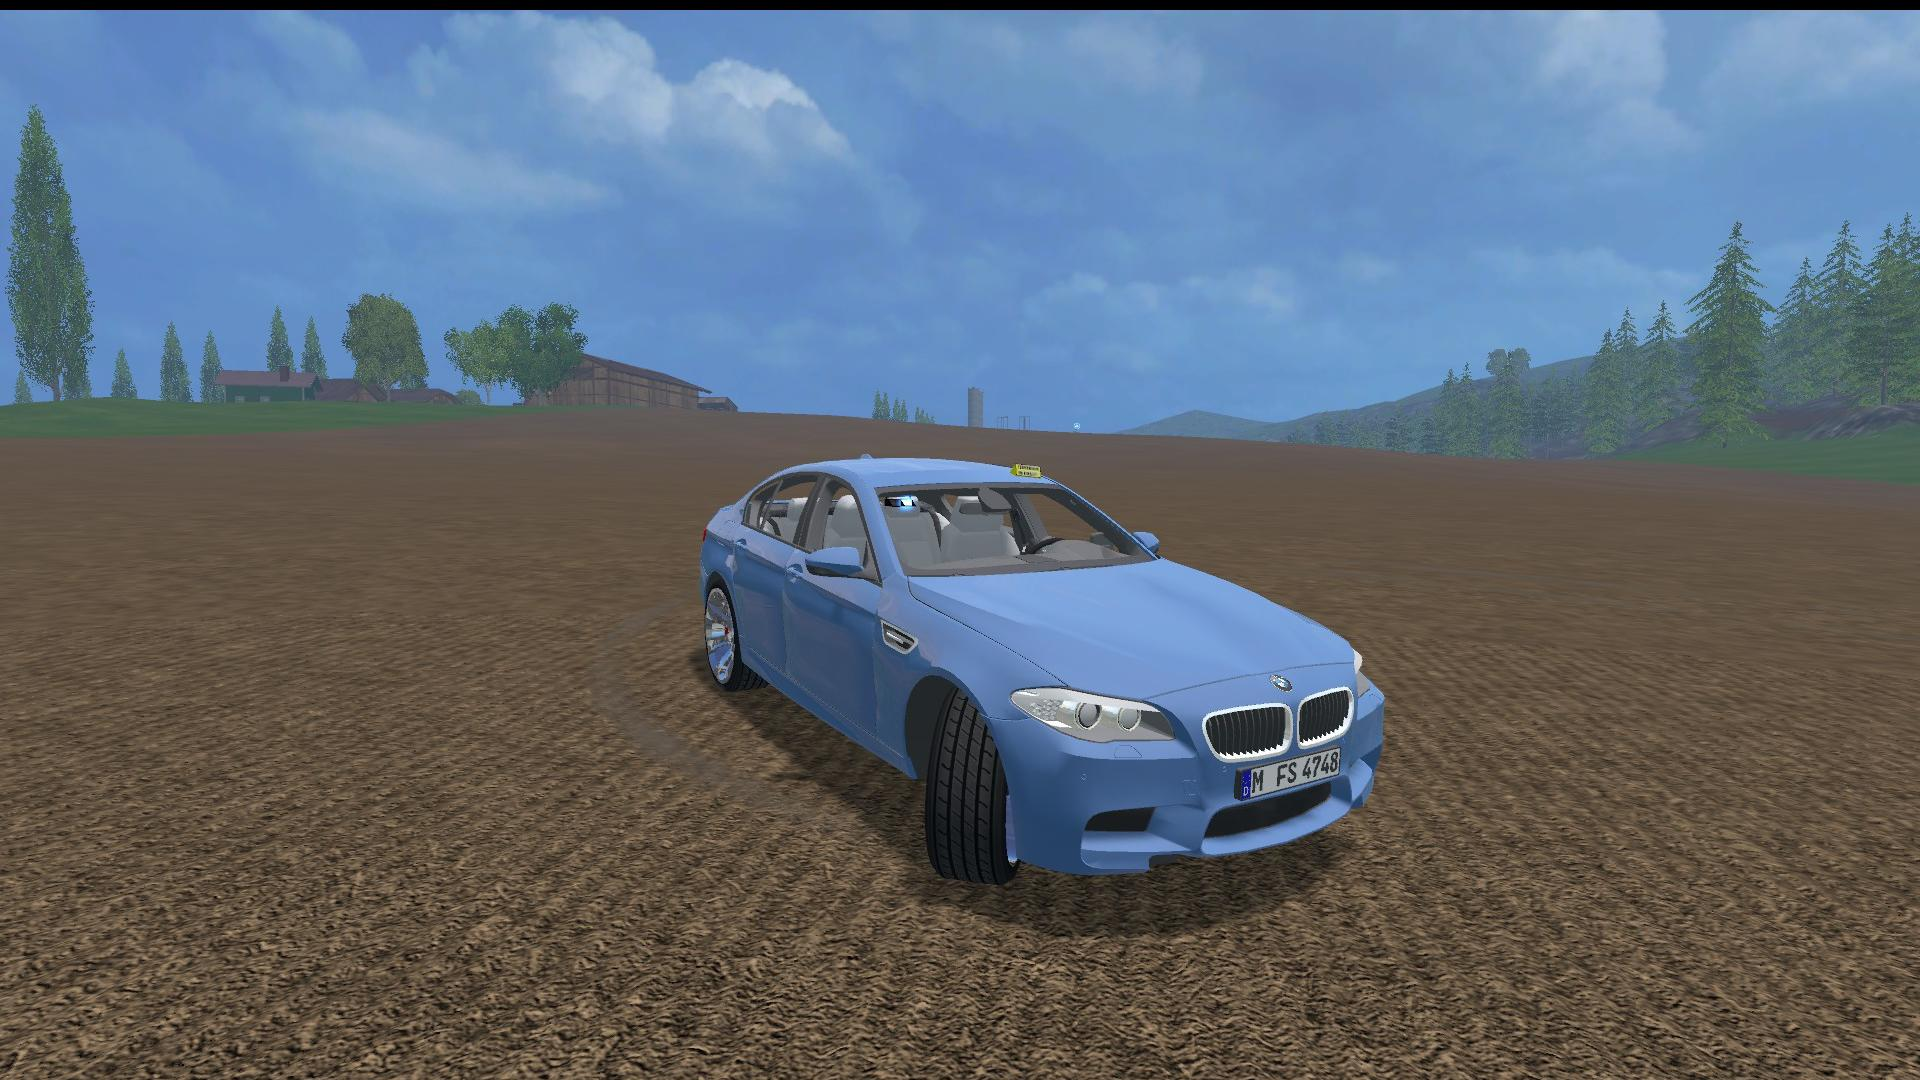 Bmw M5 Zivil Kdow Car Farming Simulator 2019 2017